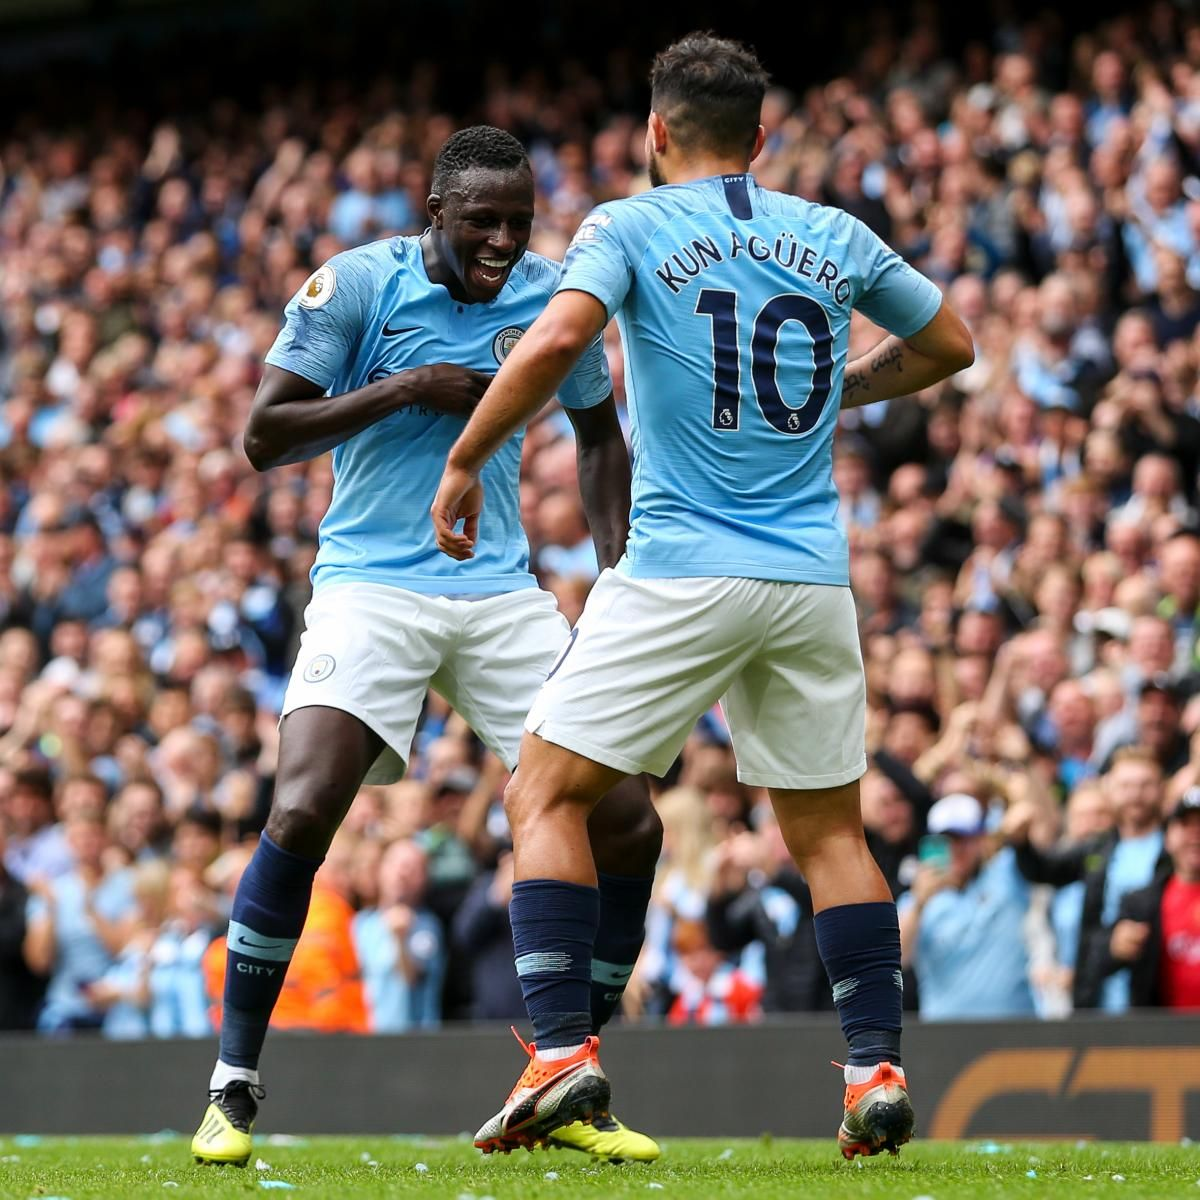 EPL 100 Ranking of Premier League's Best Players After